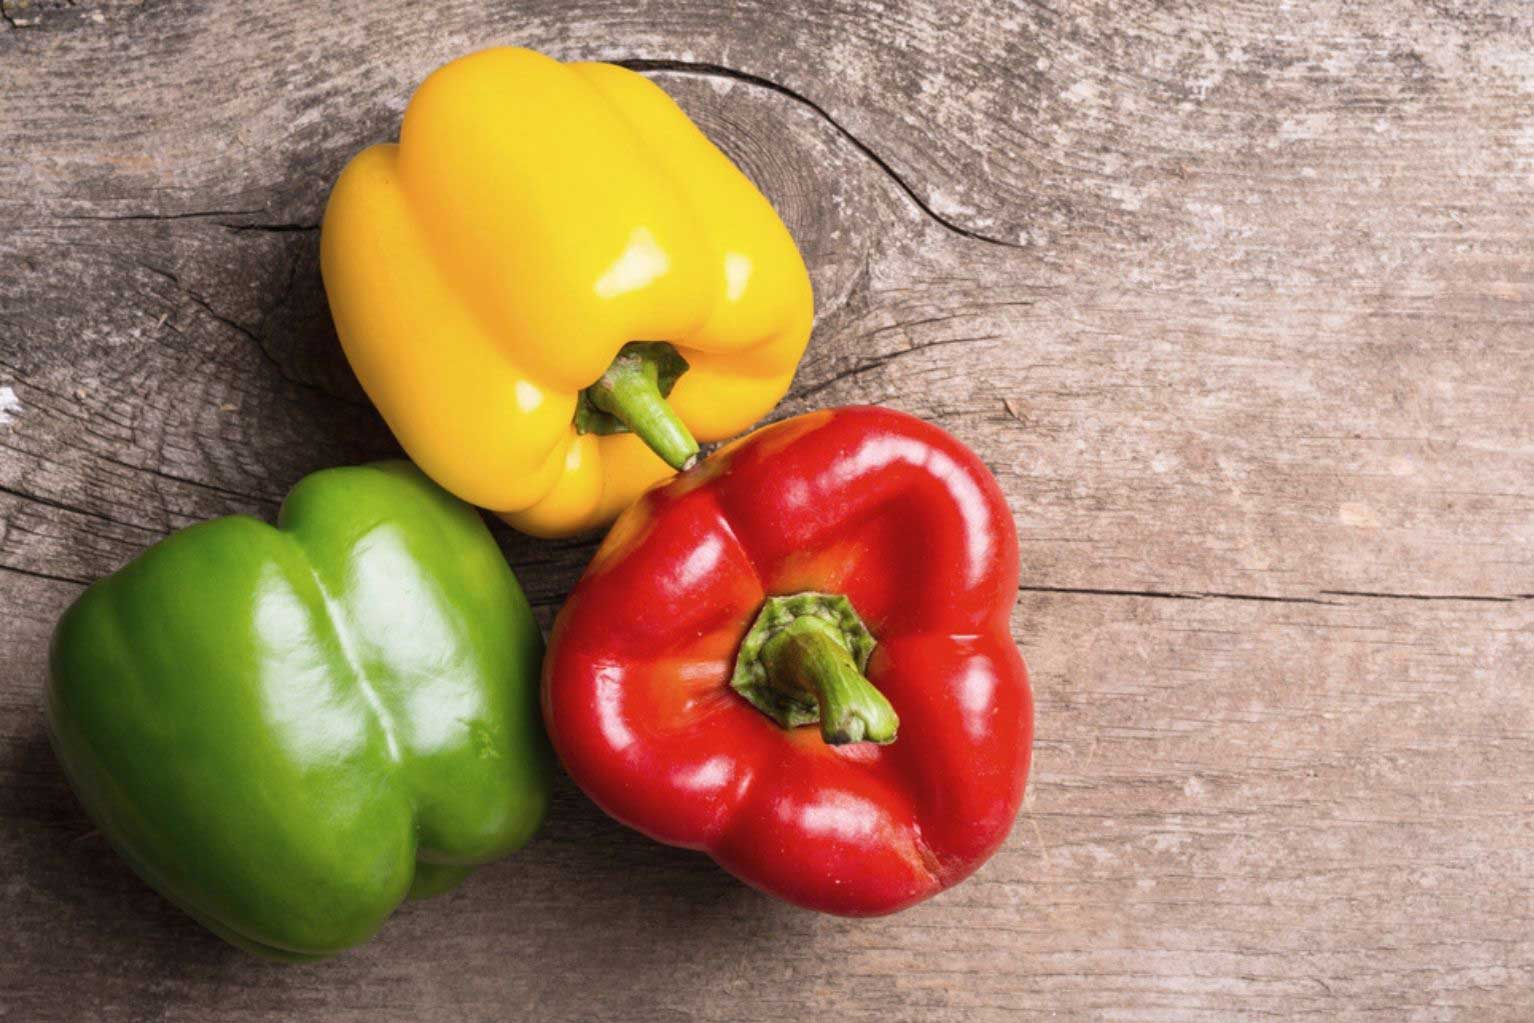 A green bell pepper, a yellow bell pepper and a red bell pepper sitting on a wooden table.